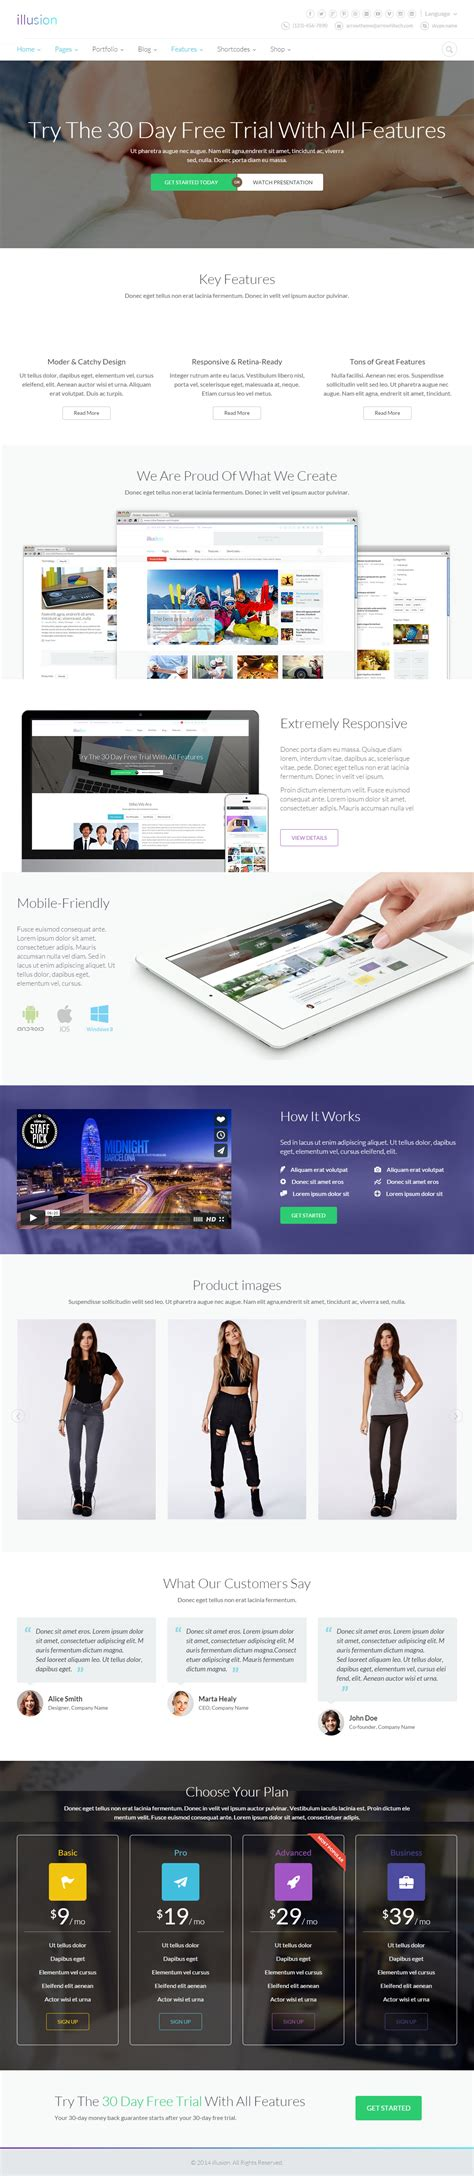 drupal theme landing page best responsive drupal landing page themes in 2014